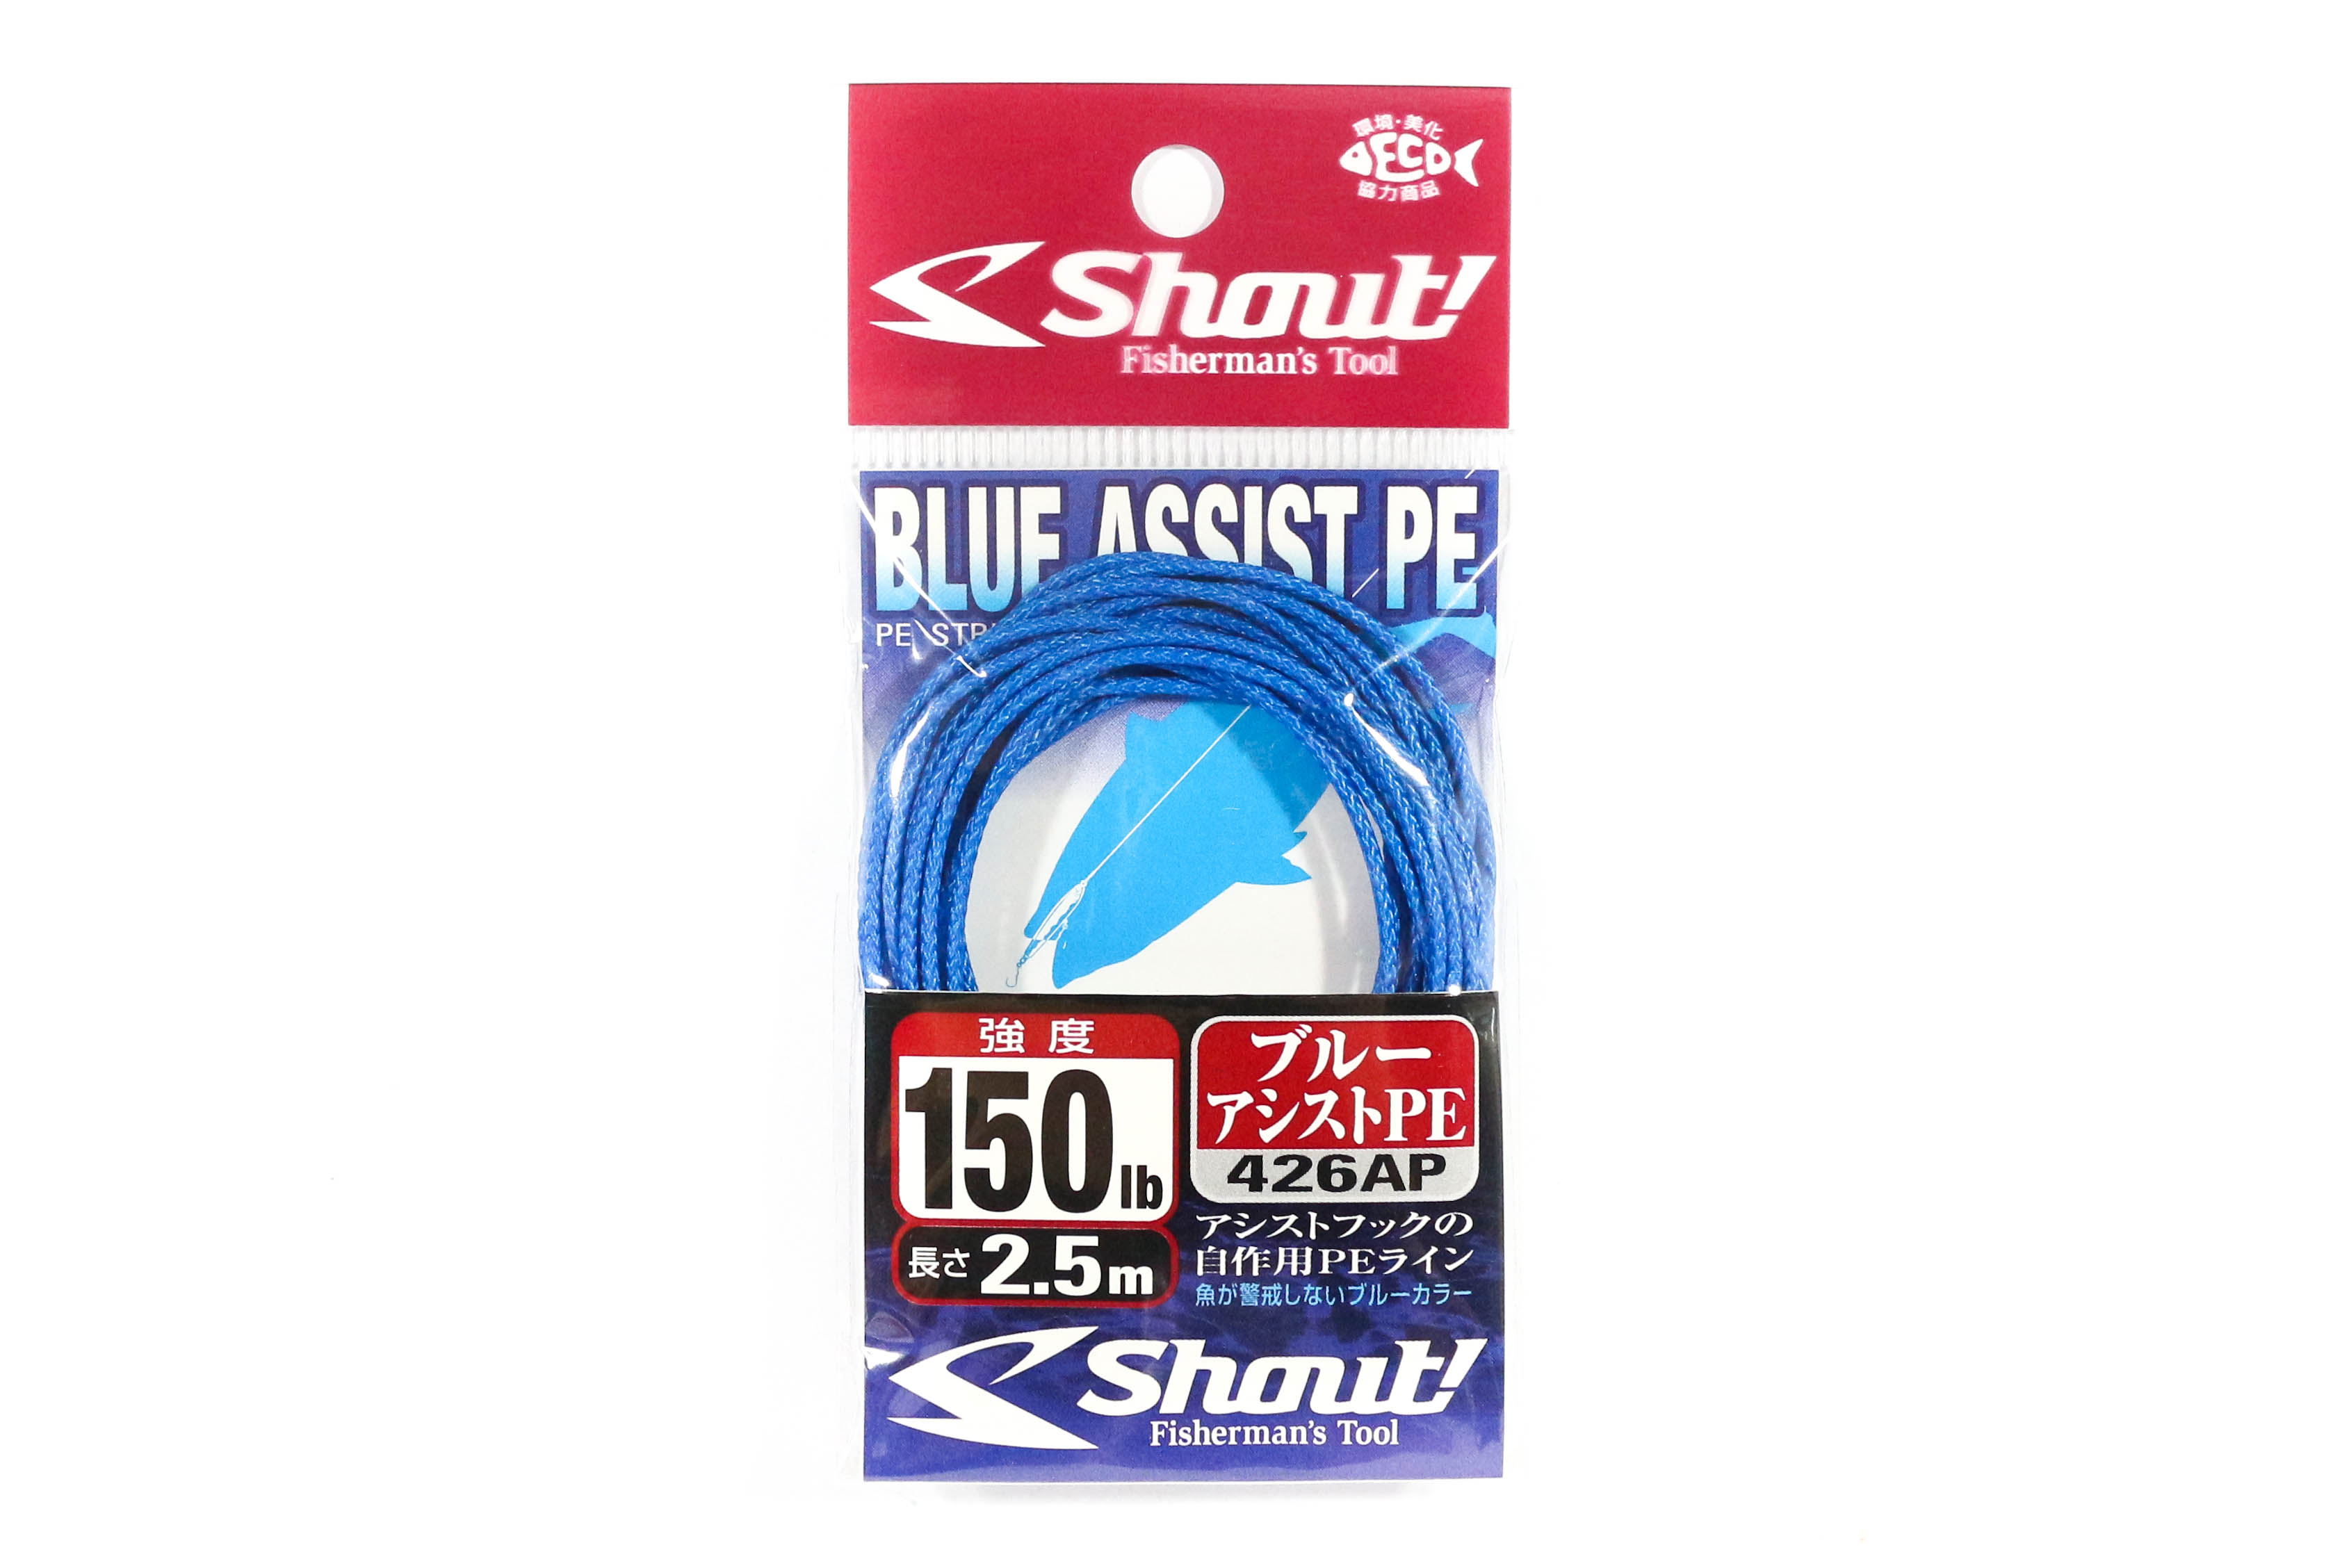 Shout 426-AP Blue Assist P.E Line Assist Rope Inner Core 2.5 meters 150LB (4671)